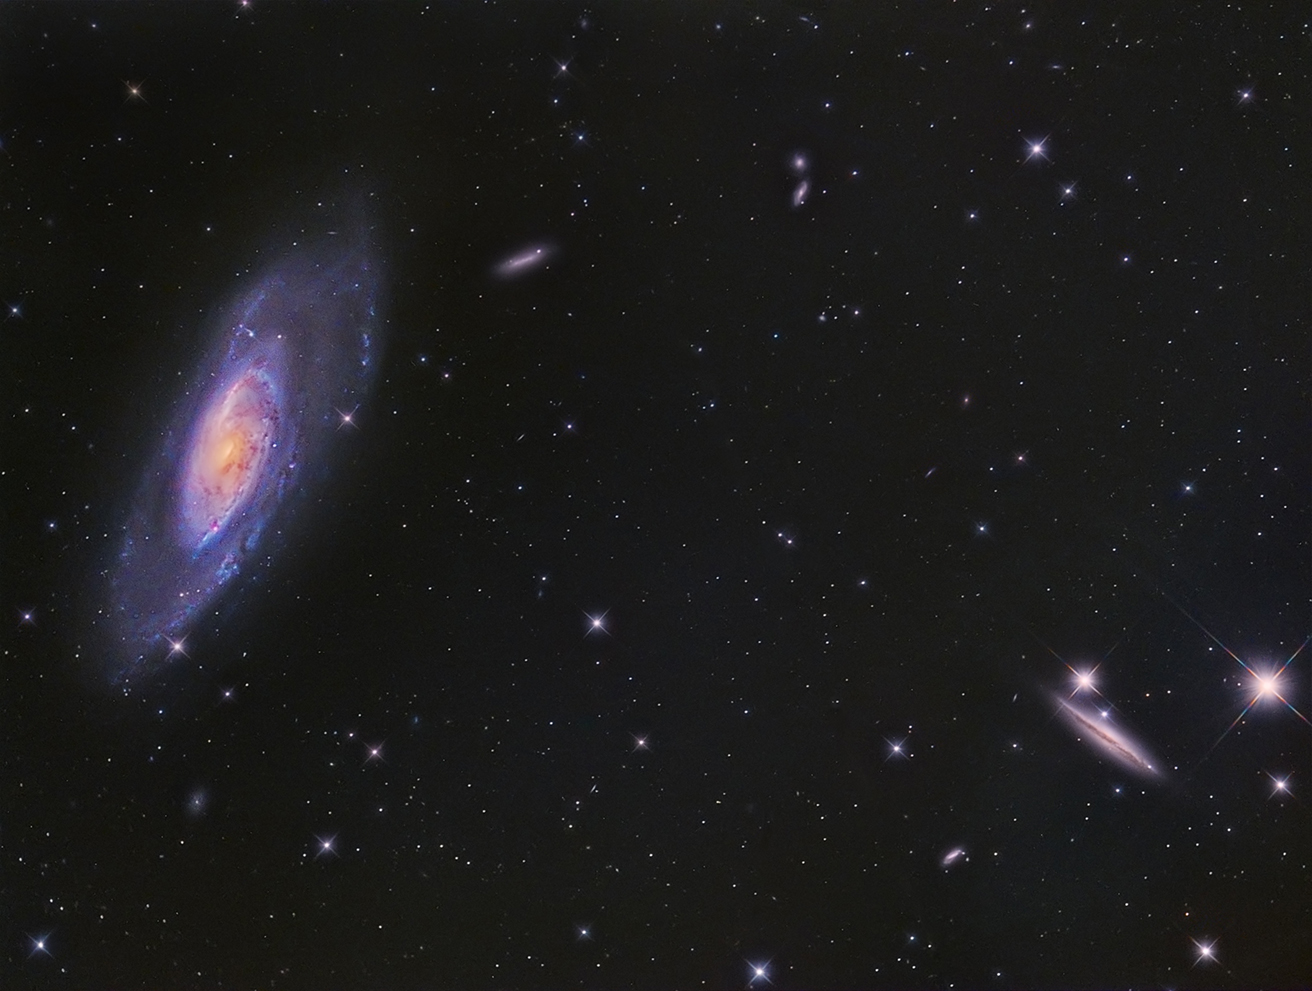 M106 and Friends, von Paul Schuberth